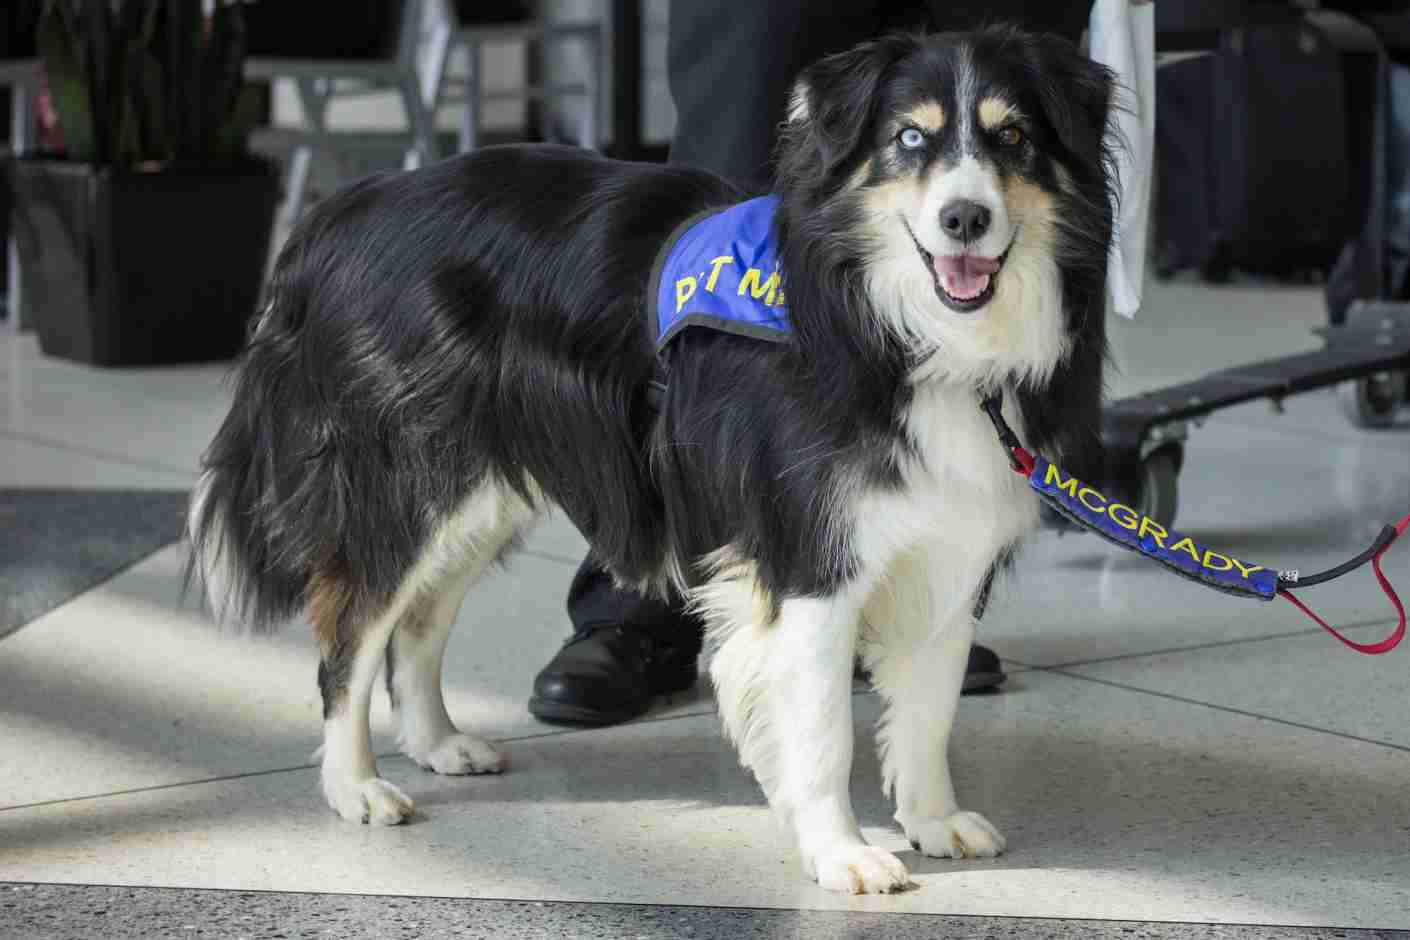 """McGrady is extra special,"" says Lauri Golden of the adorable Australian Shepherd. Image courtesy of Charlotte Douglas International Airport."